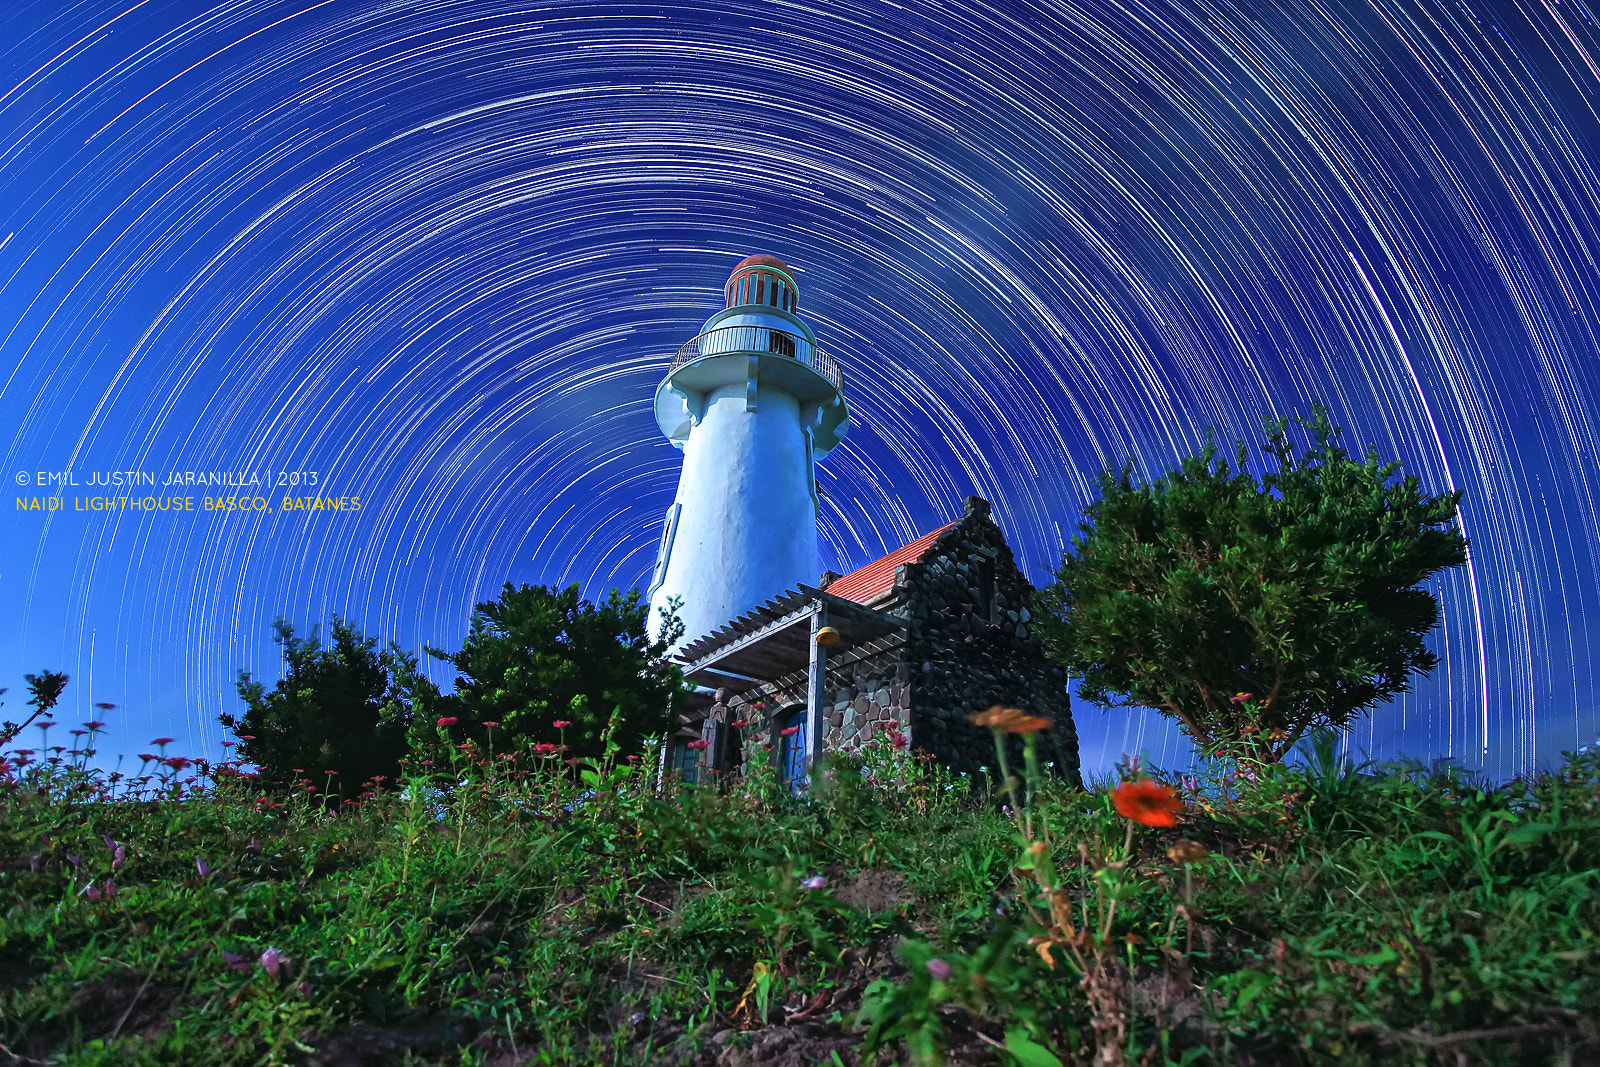 Photograph StarTrails at Naidi by Emil Justin Jaranilla on 500px